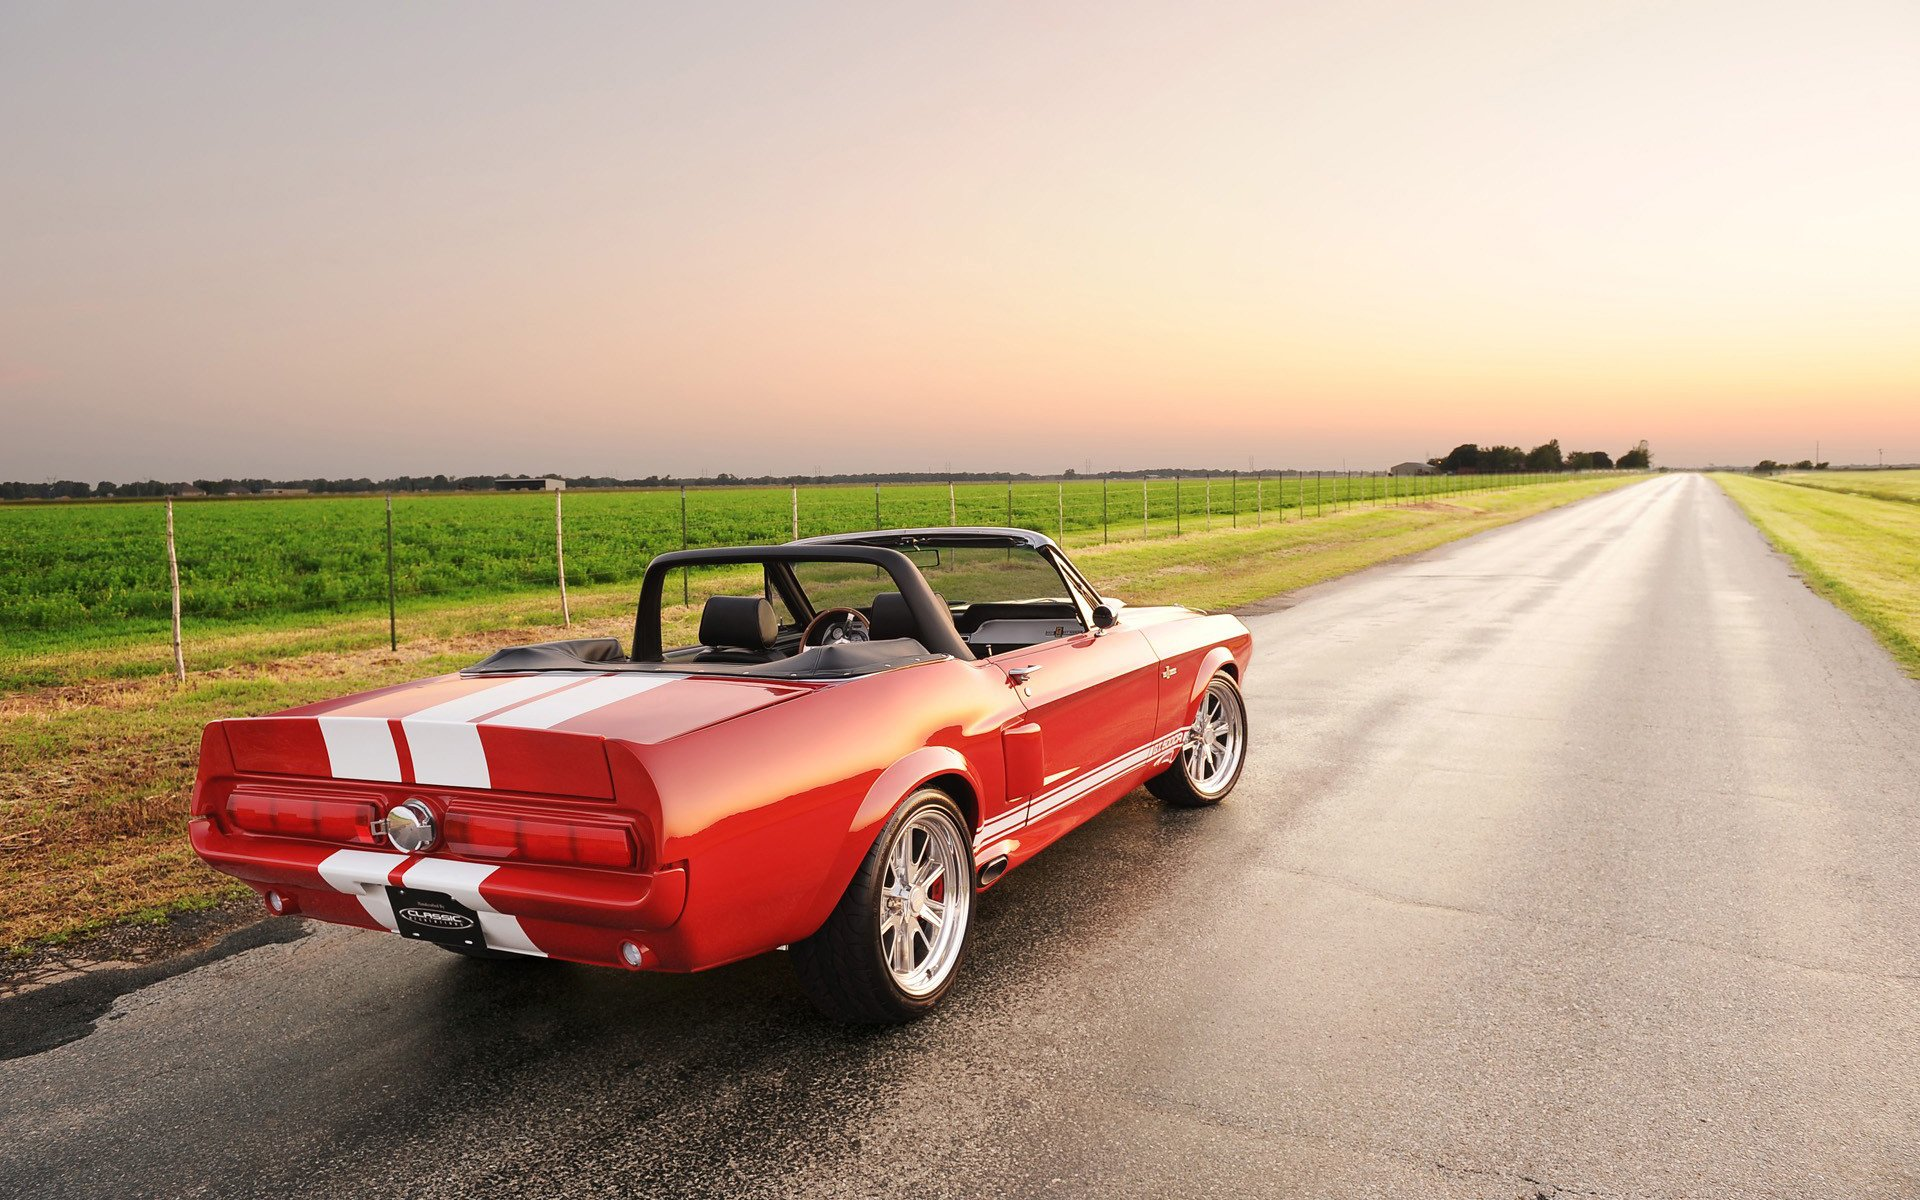 Vehicles - Shelby GT500 Classic Recreation  Muscle Car Classic Car Convertible Red Car Wallpaper